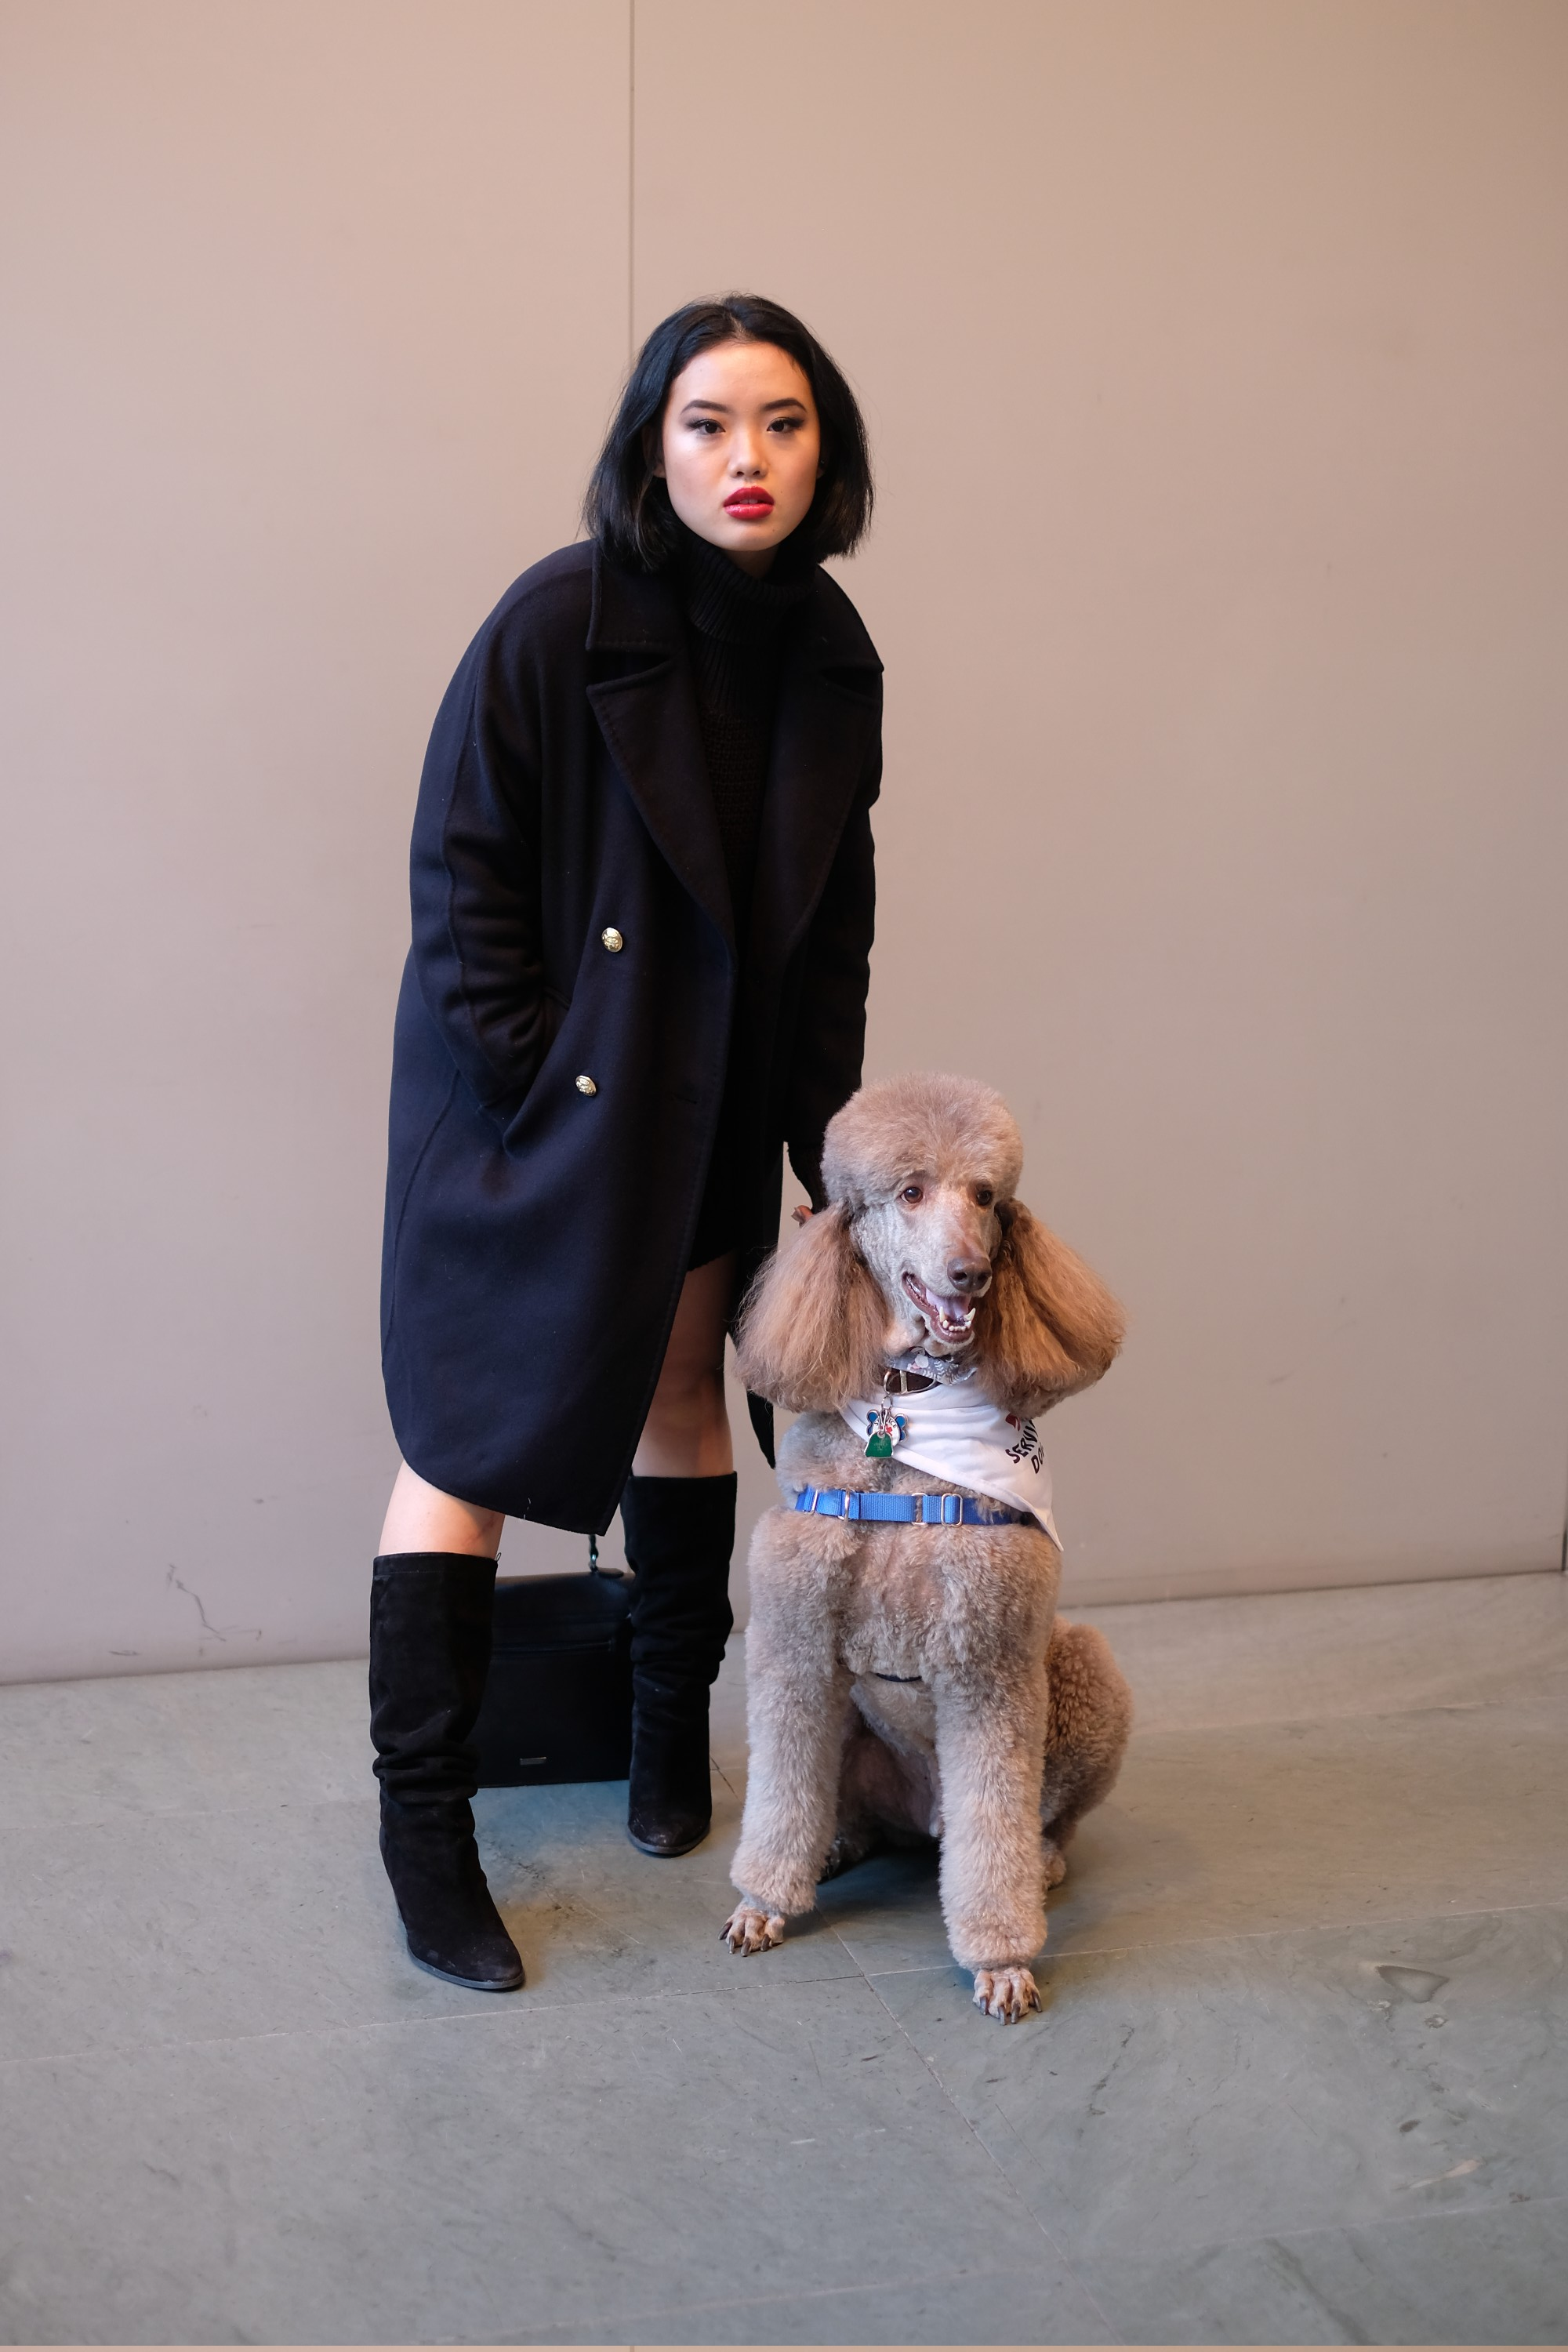 Chinese model with dog